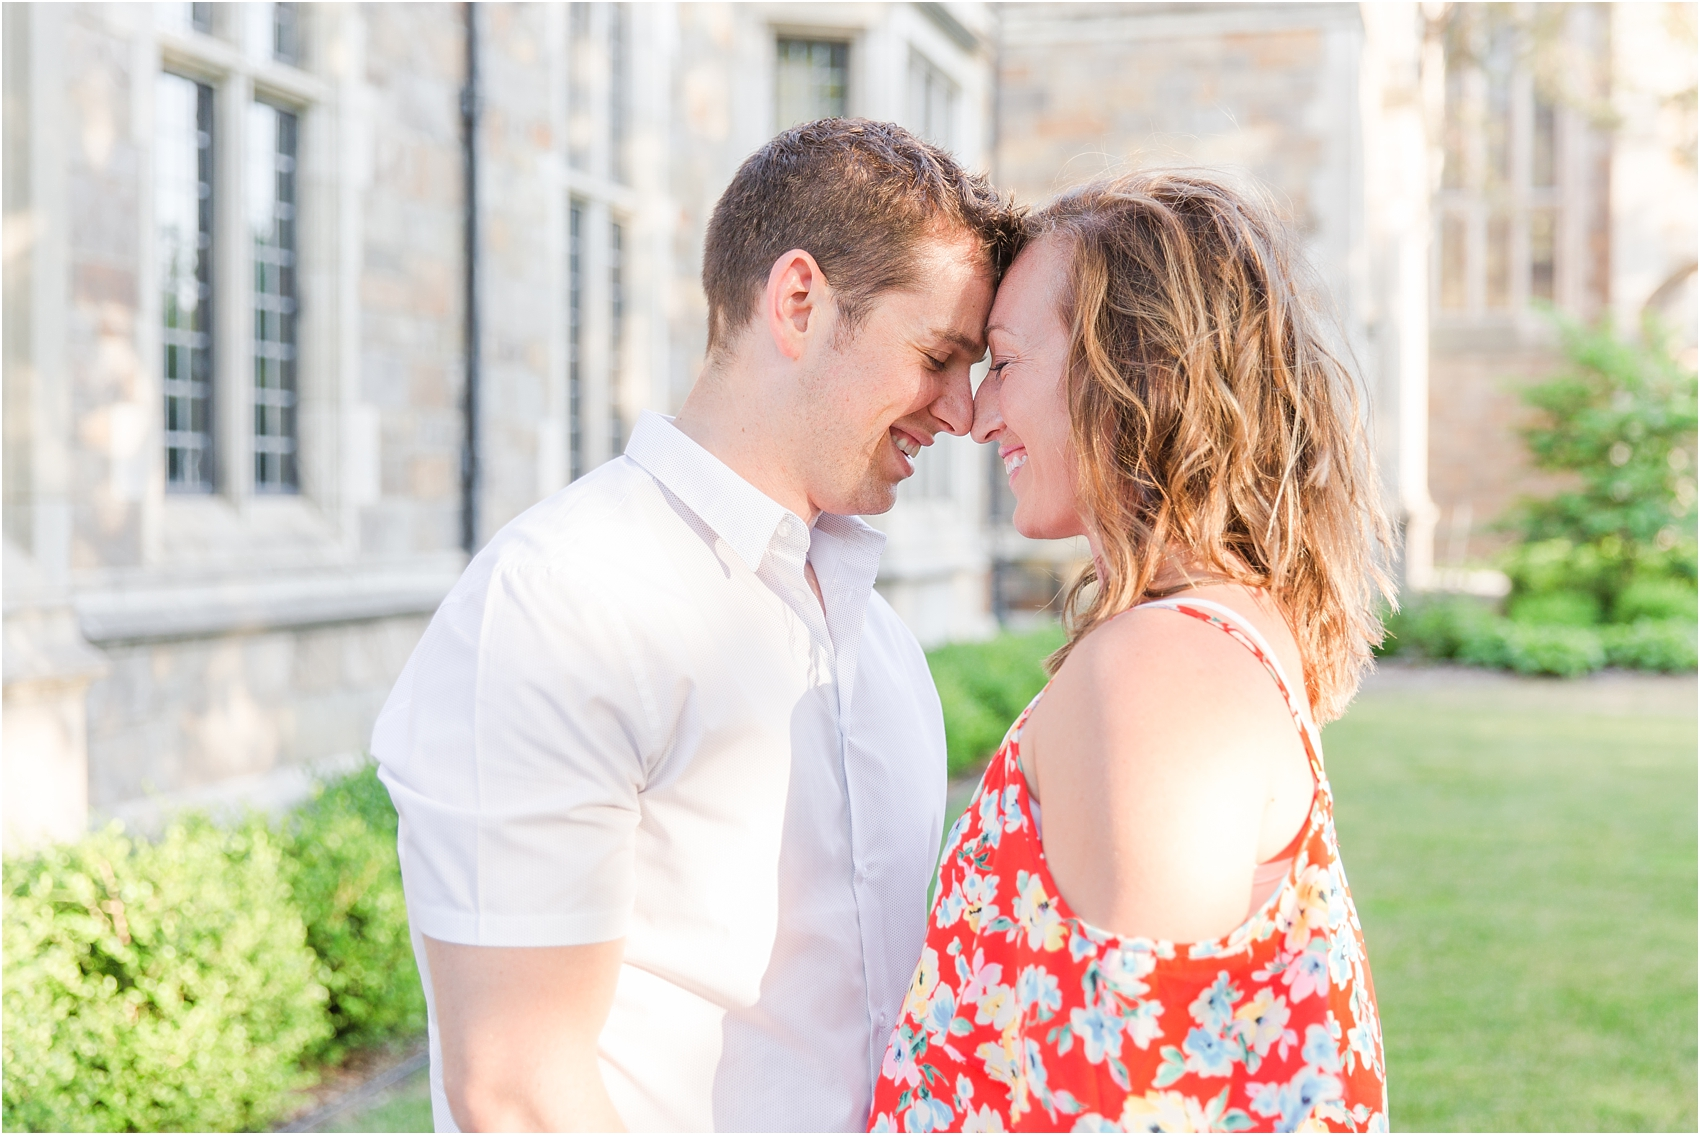 fun-adventurous-engagement-photos-at-the-nickels-arcade-in-ann-arbor-mi-by-courtney-carolyn-photography_0029.jpg